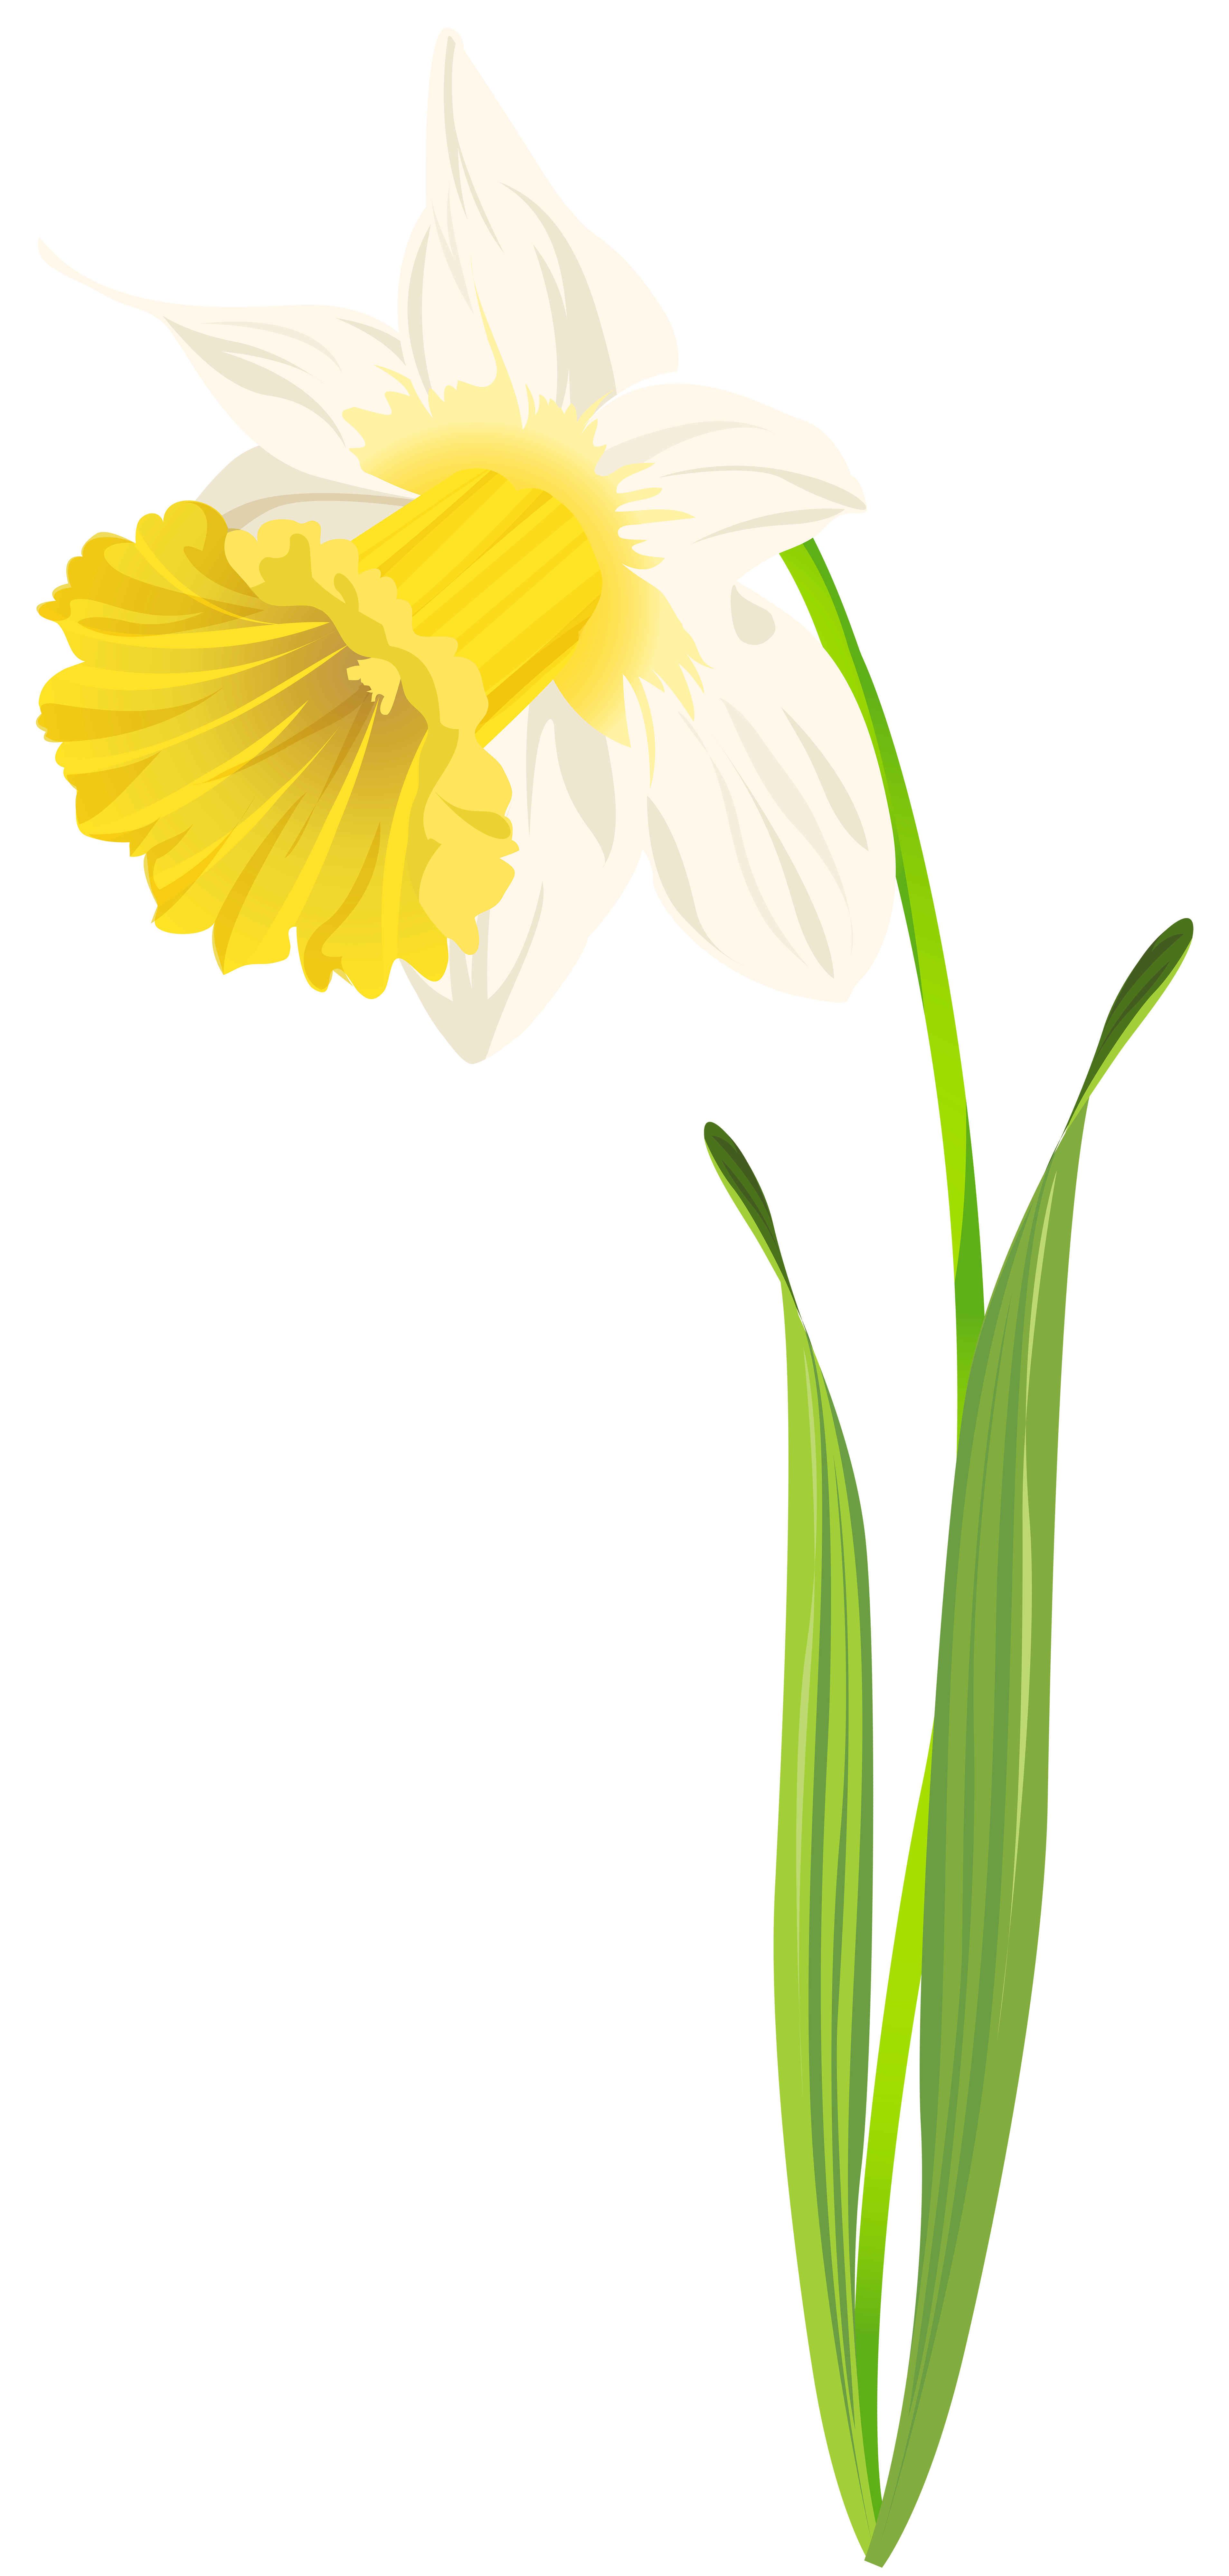 3817x8000 Daffodil Png Clip Art Image